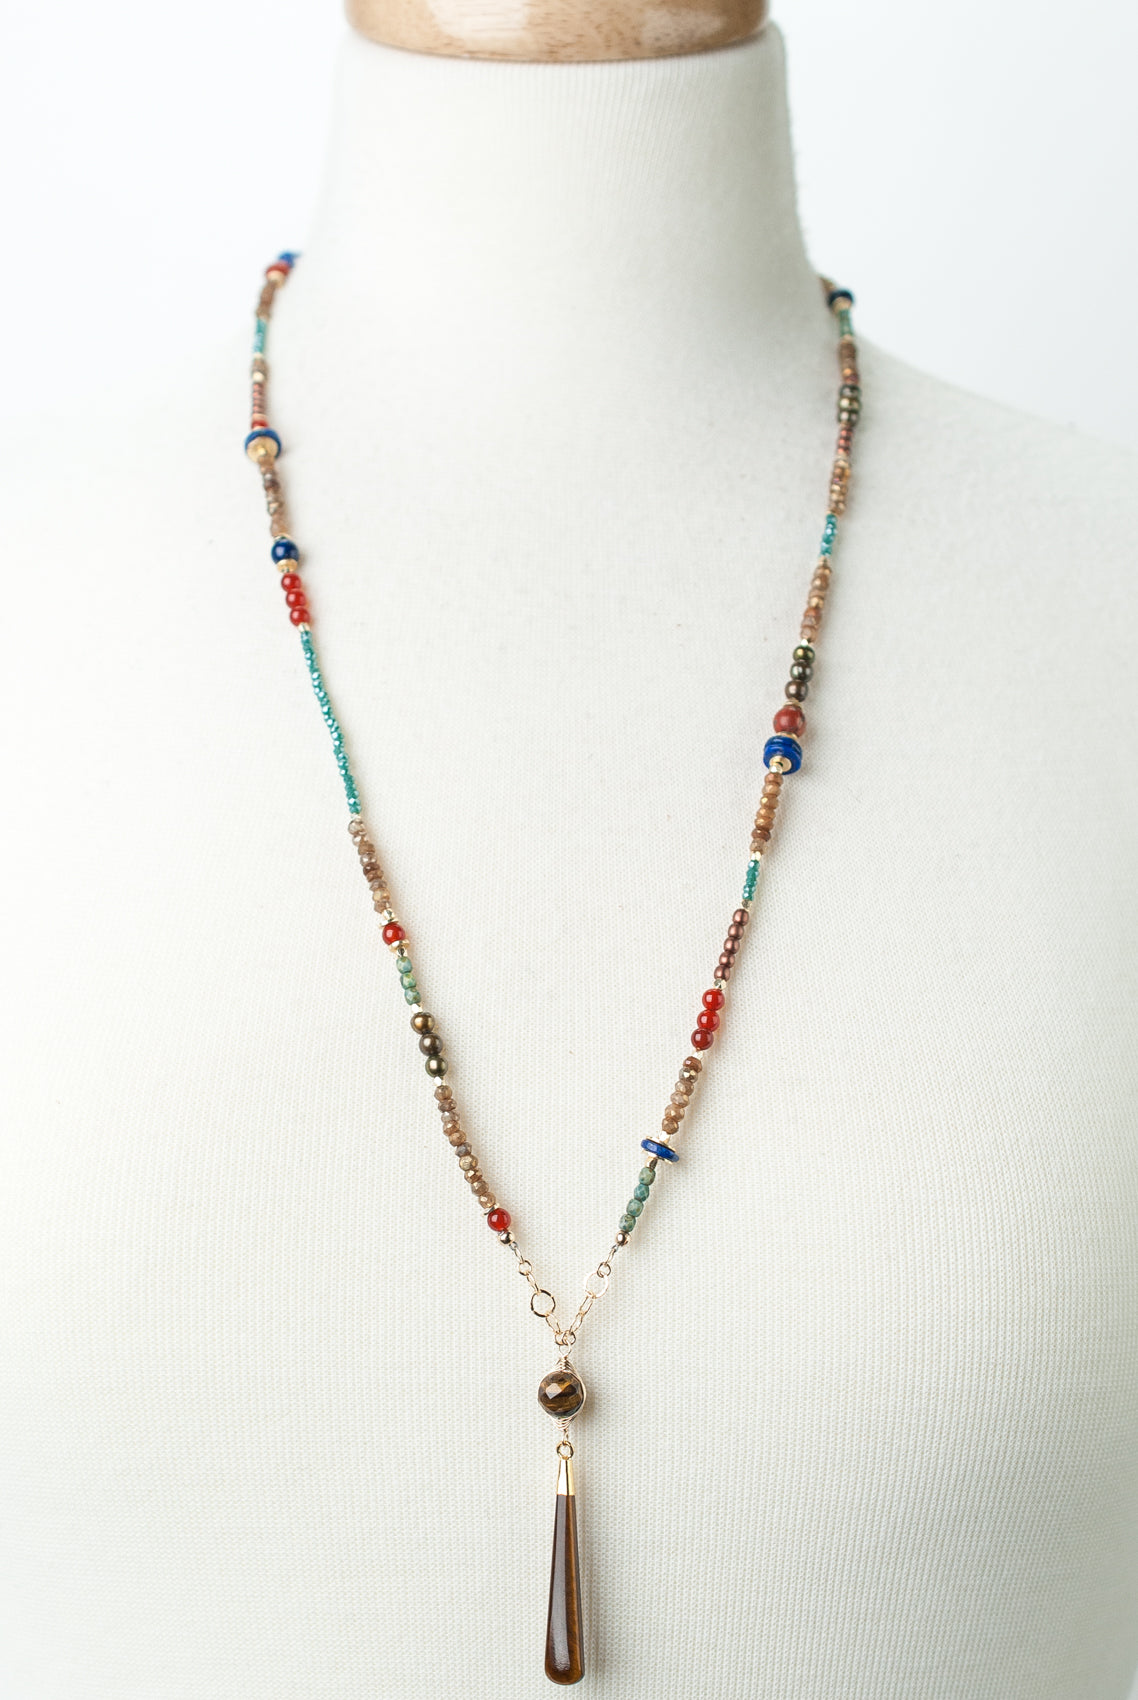 "*Intrigue 28.5-30.5"" Diamond Finish Quartz, Lapis, Jasper, Tiger's Eye Collage Focal Necklace"